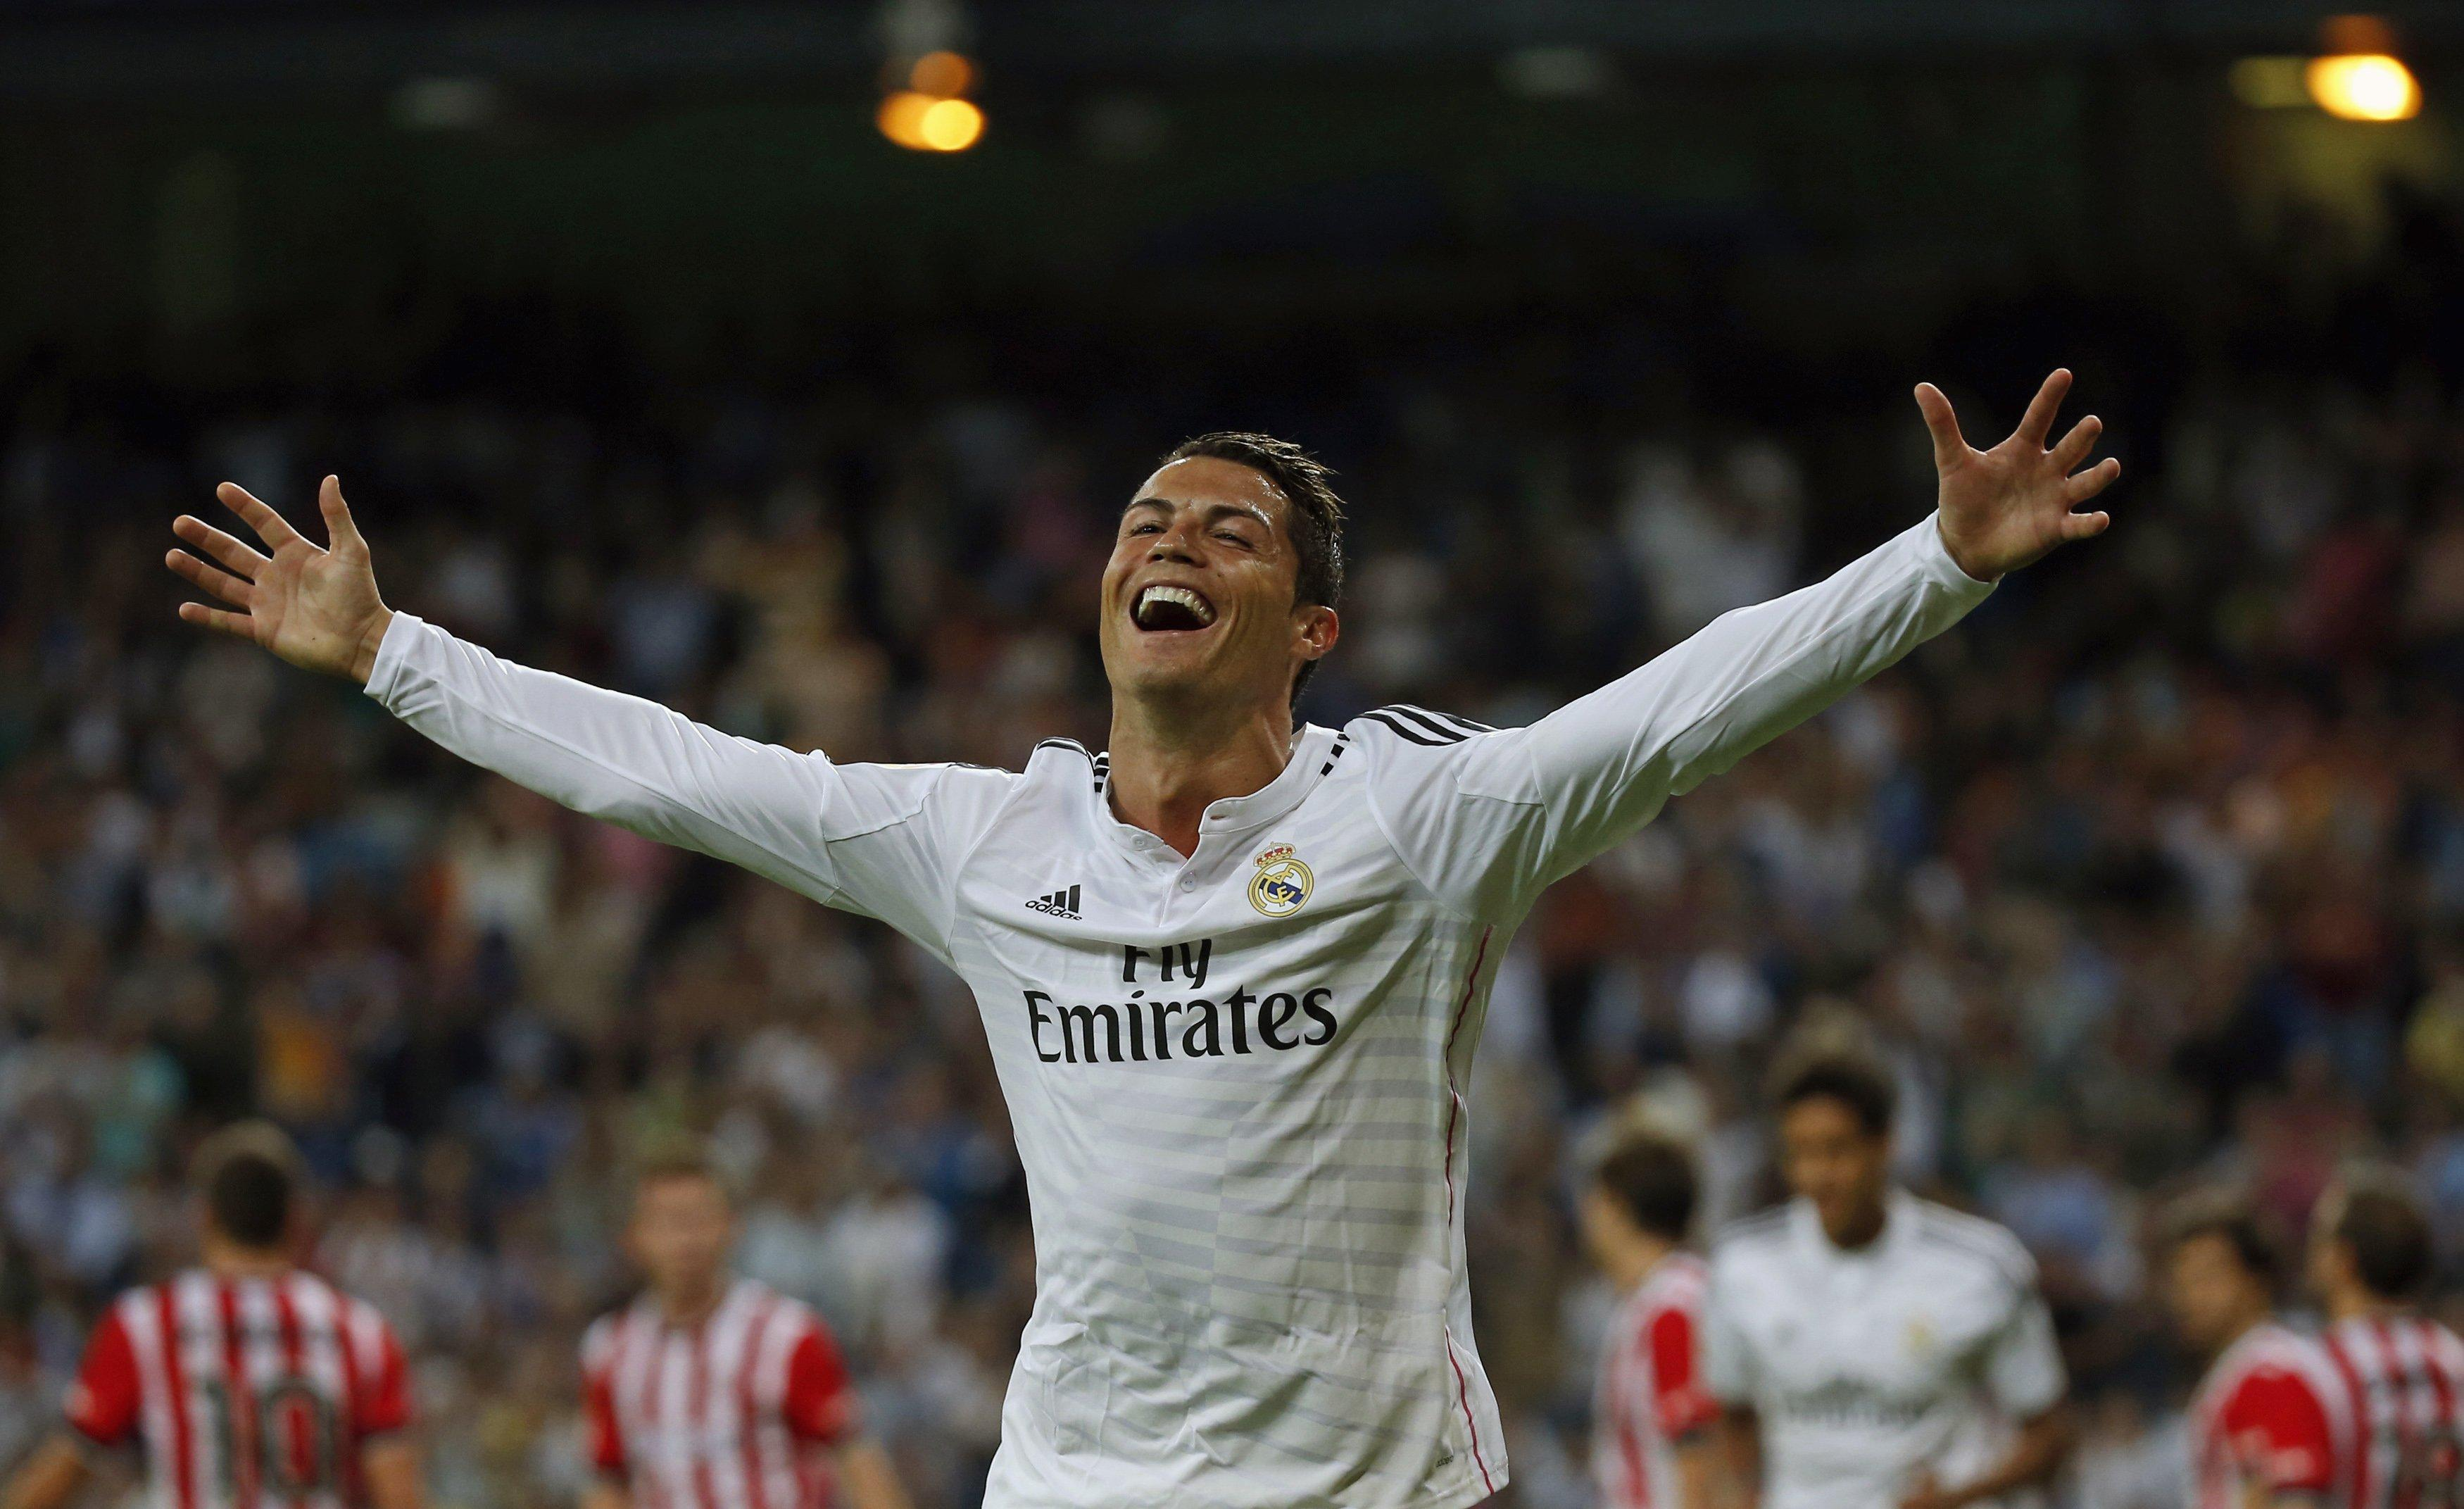 Cristiano Ronaldo May Be The Ultimate Soccer Player Sports Scientist Claims